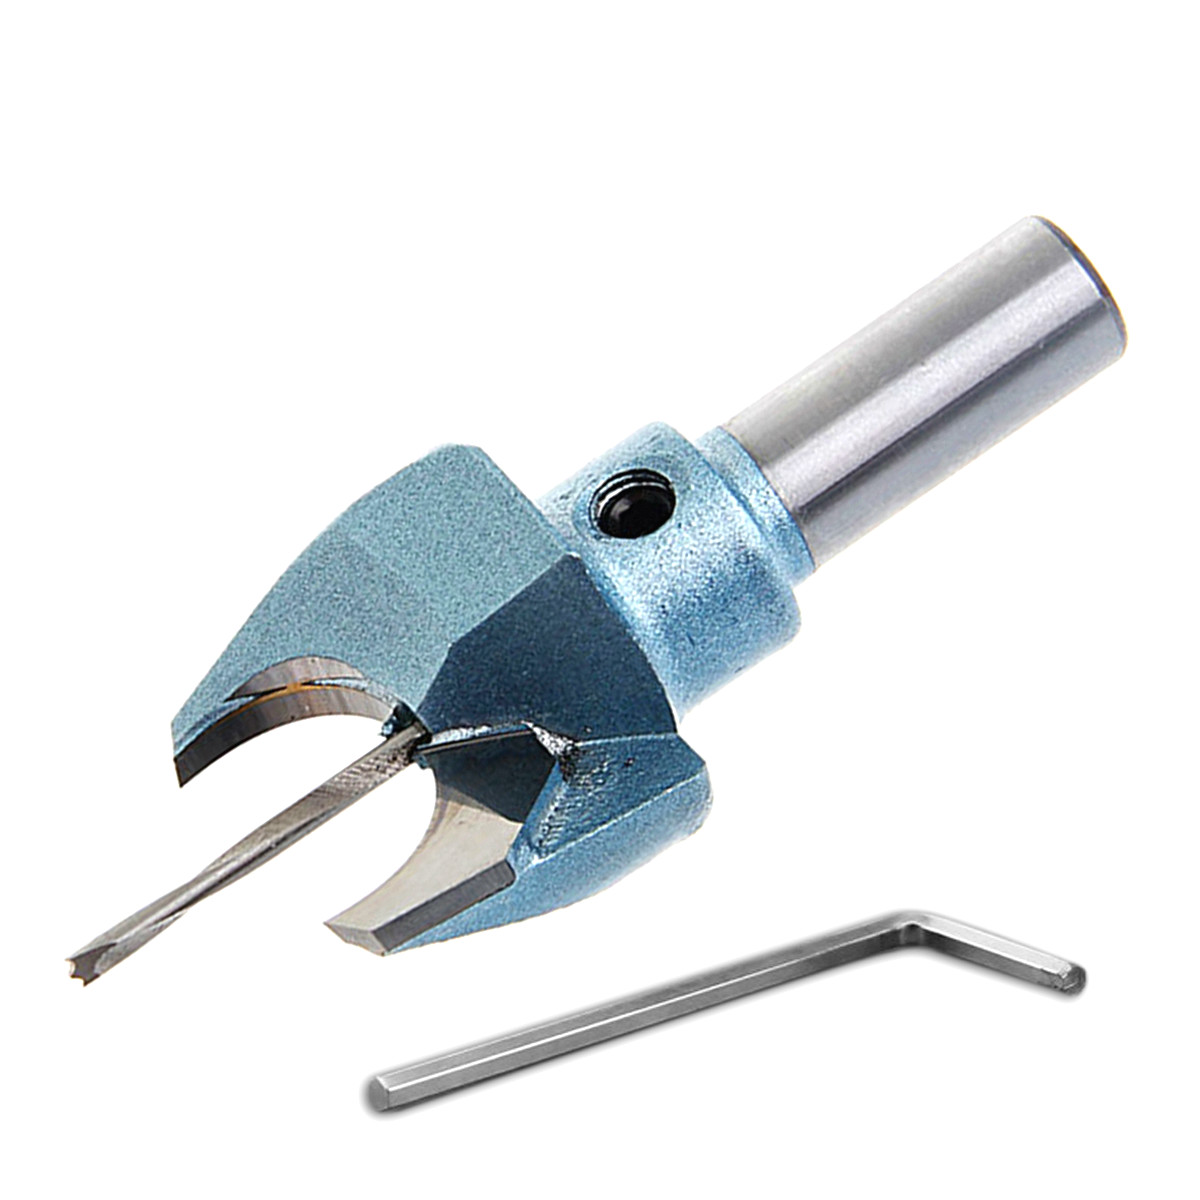 NEW Quality 10mm*16mm/18mm/20mm Buddha Beads Ball Drill Tool Solid Carbide Woodworking Router Bit FGHGF 16pcs 14 25mm carbide milling cutter router bit buddha ball woodworking tools wooden beads ball blade drills bit molding tool